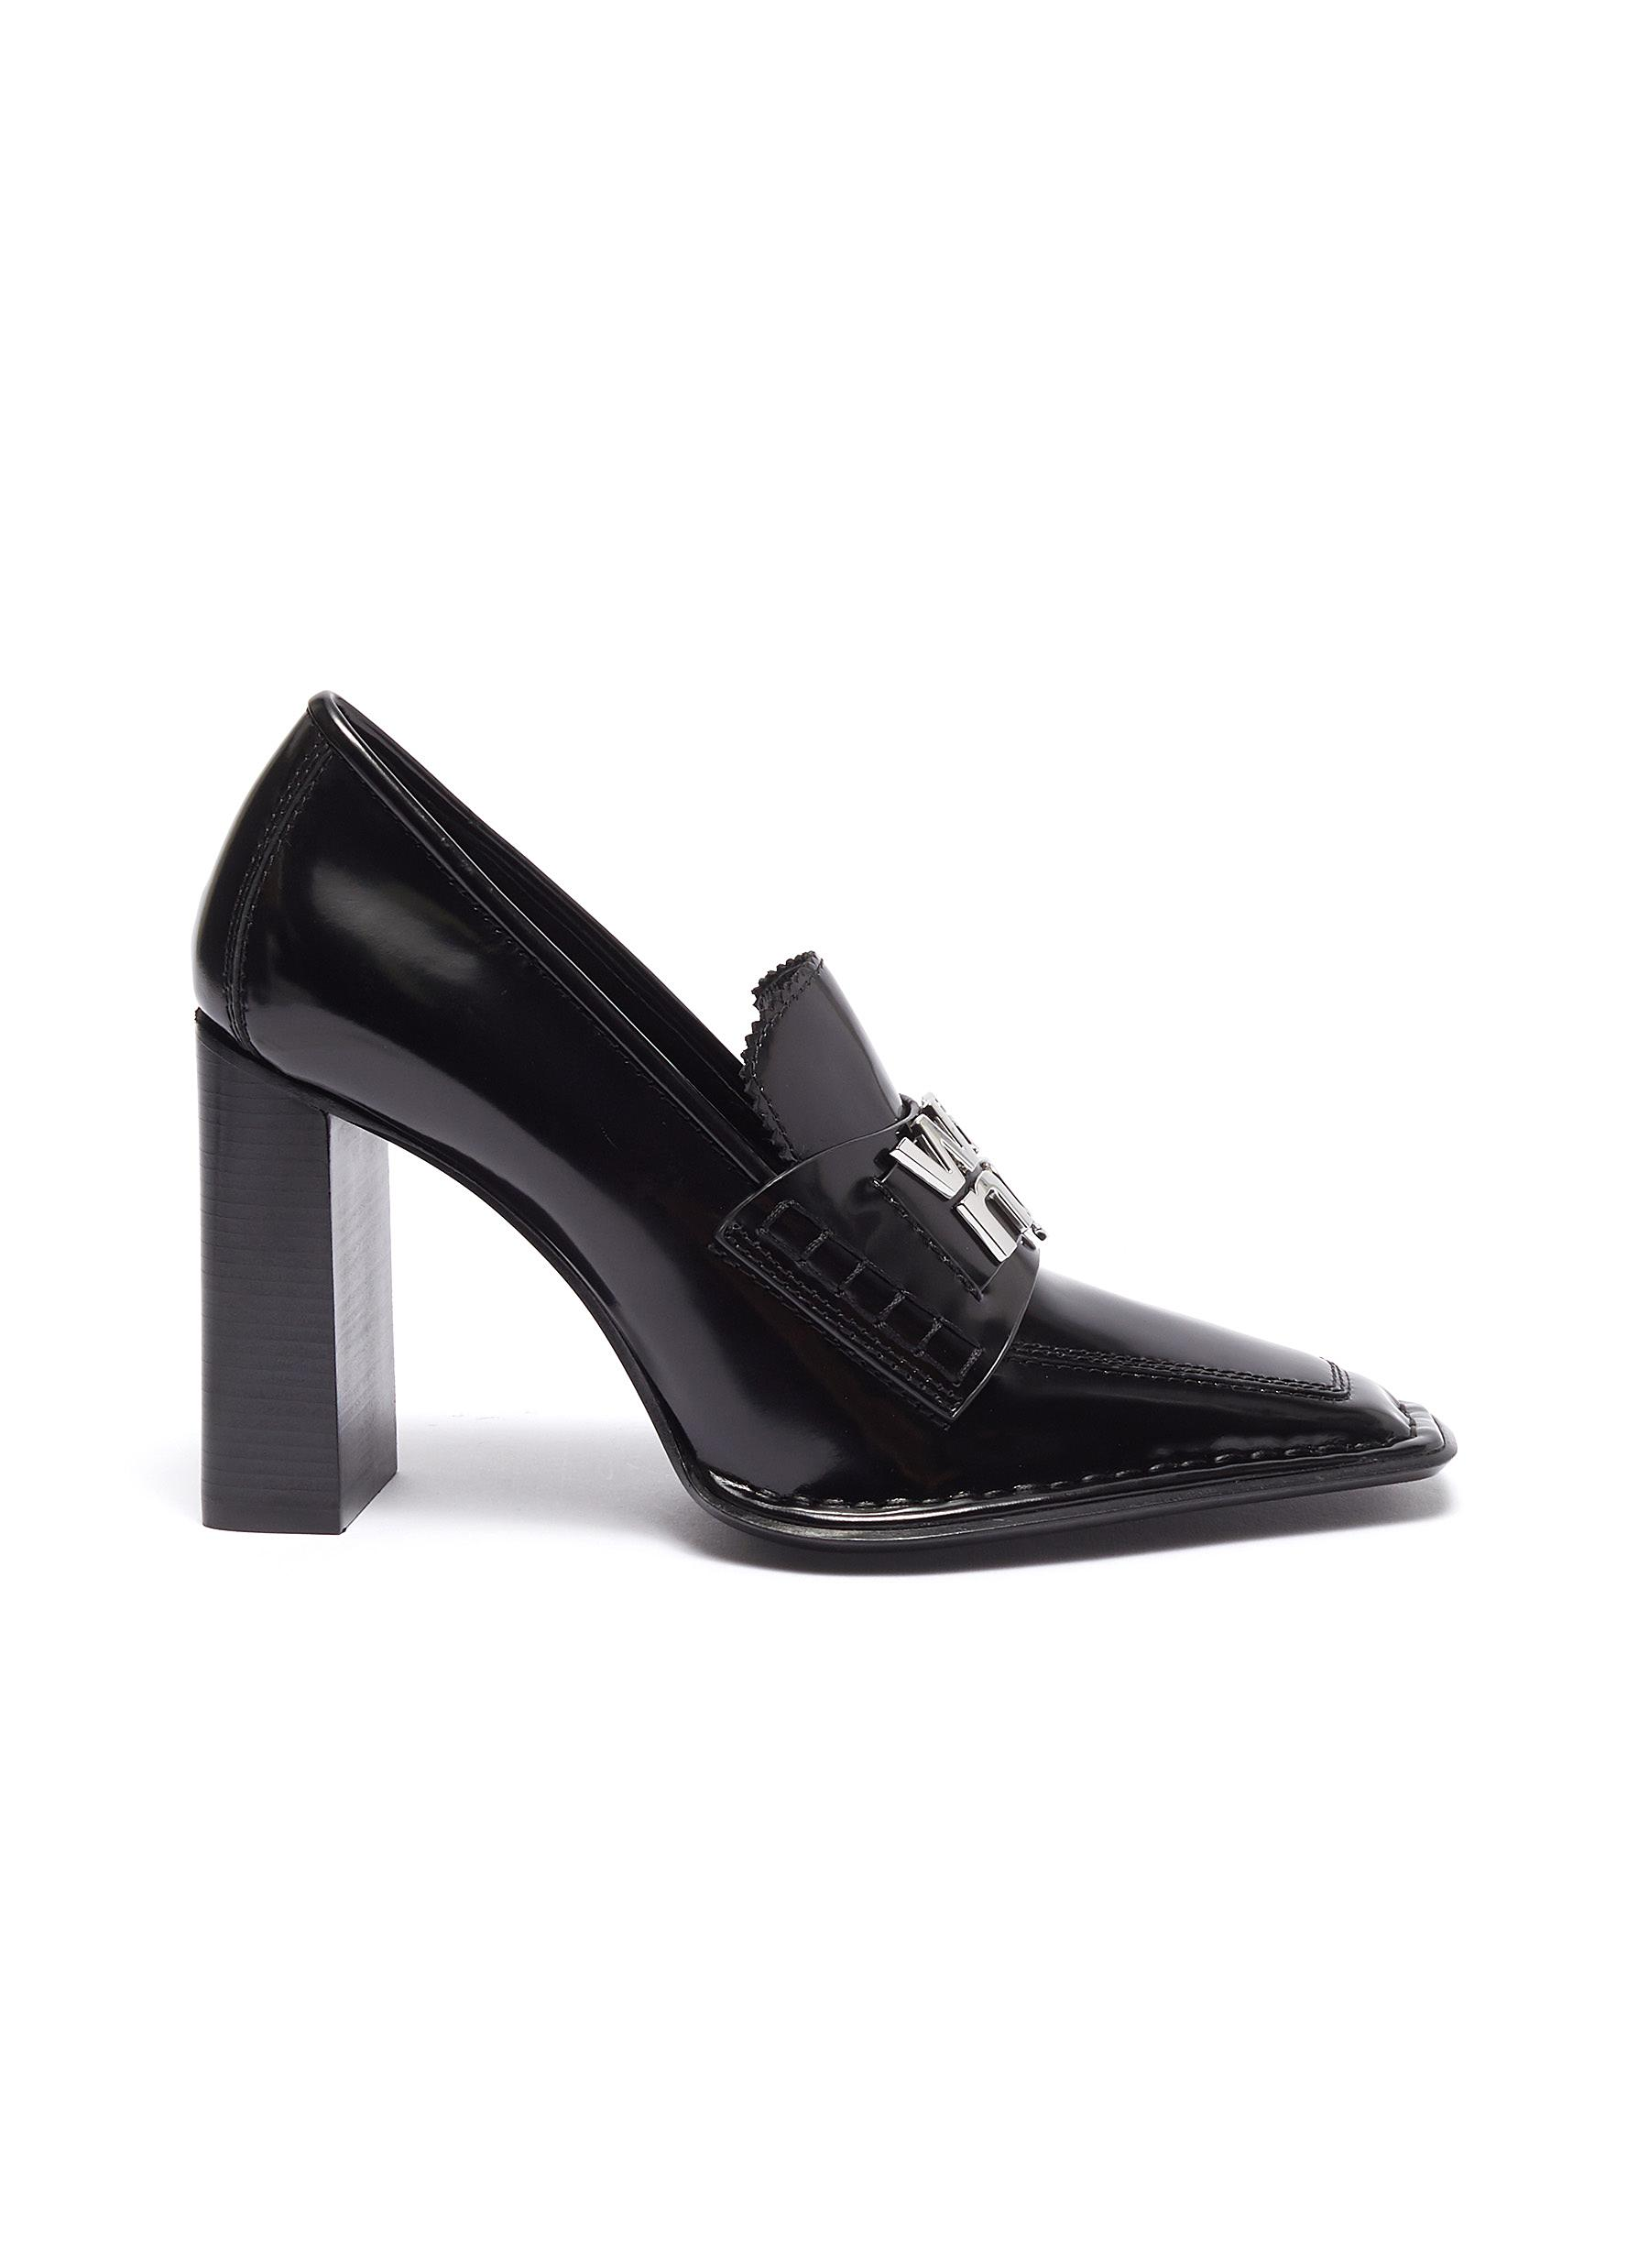 Parker logo plate leather loafer pumps by Alexanderwang